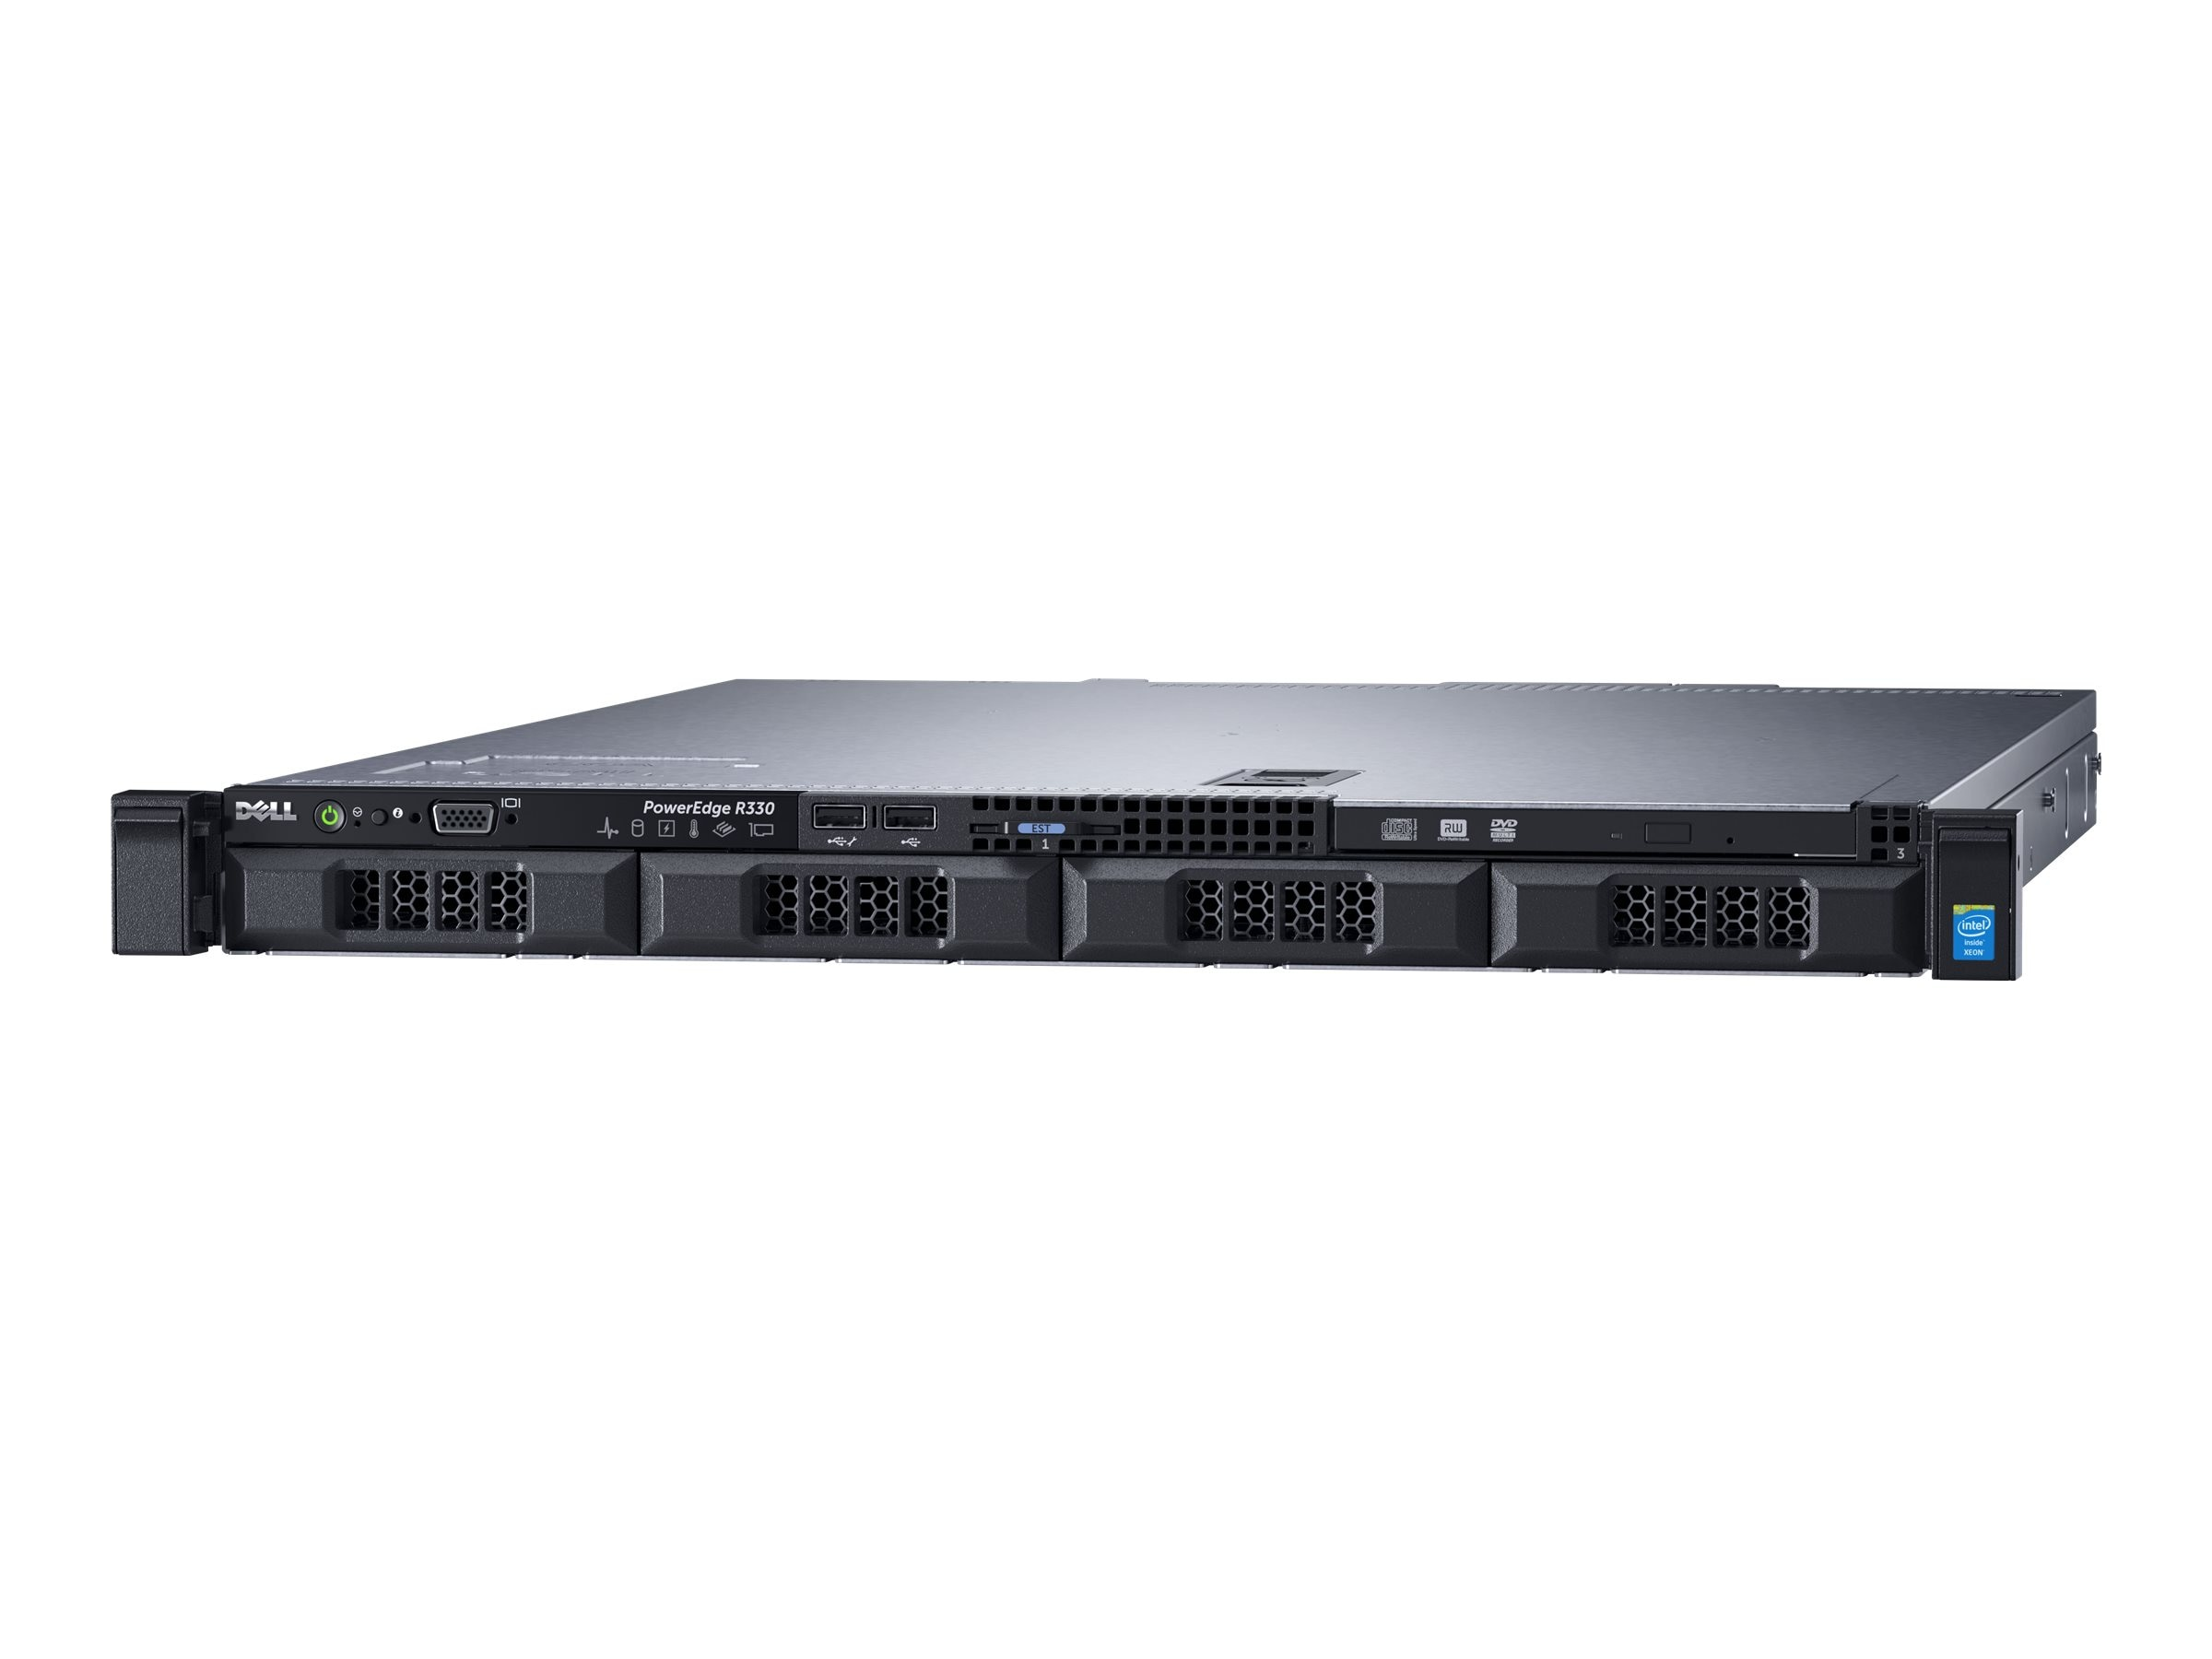 Dell PowerEdge R330 1U RM Xeon QC E3-1240 v5 3.5GHz 8GB 1x1TB 4x3.5 HP Bays H330 DVD 2xGbE 350W